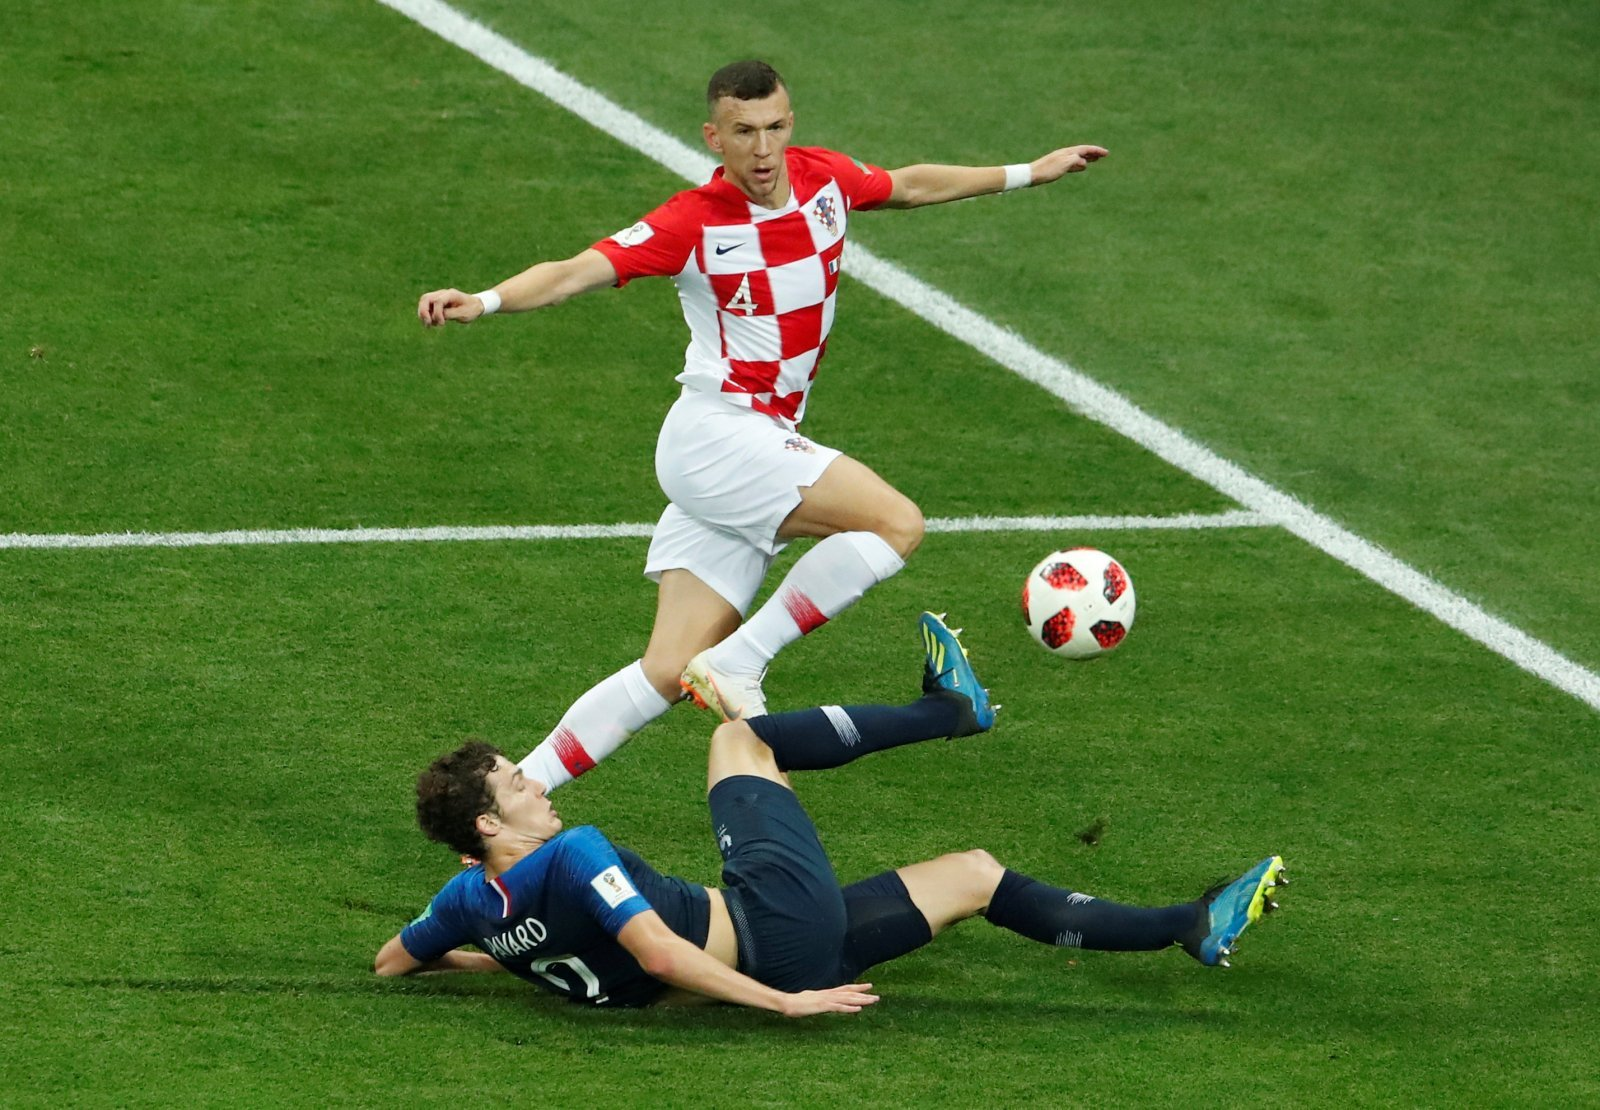 Wolves: Ivan Perisic would be a statement signing